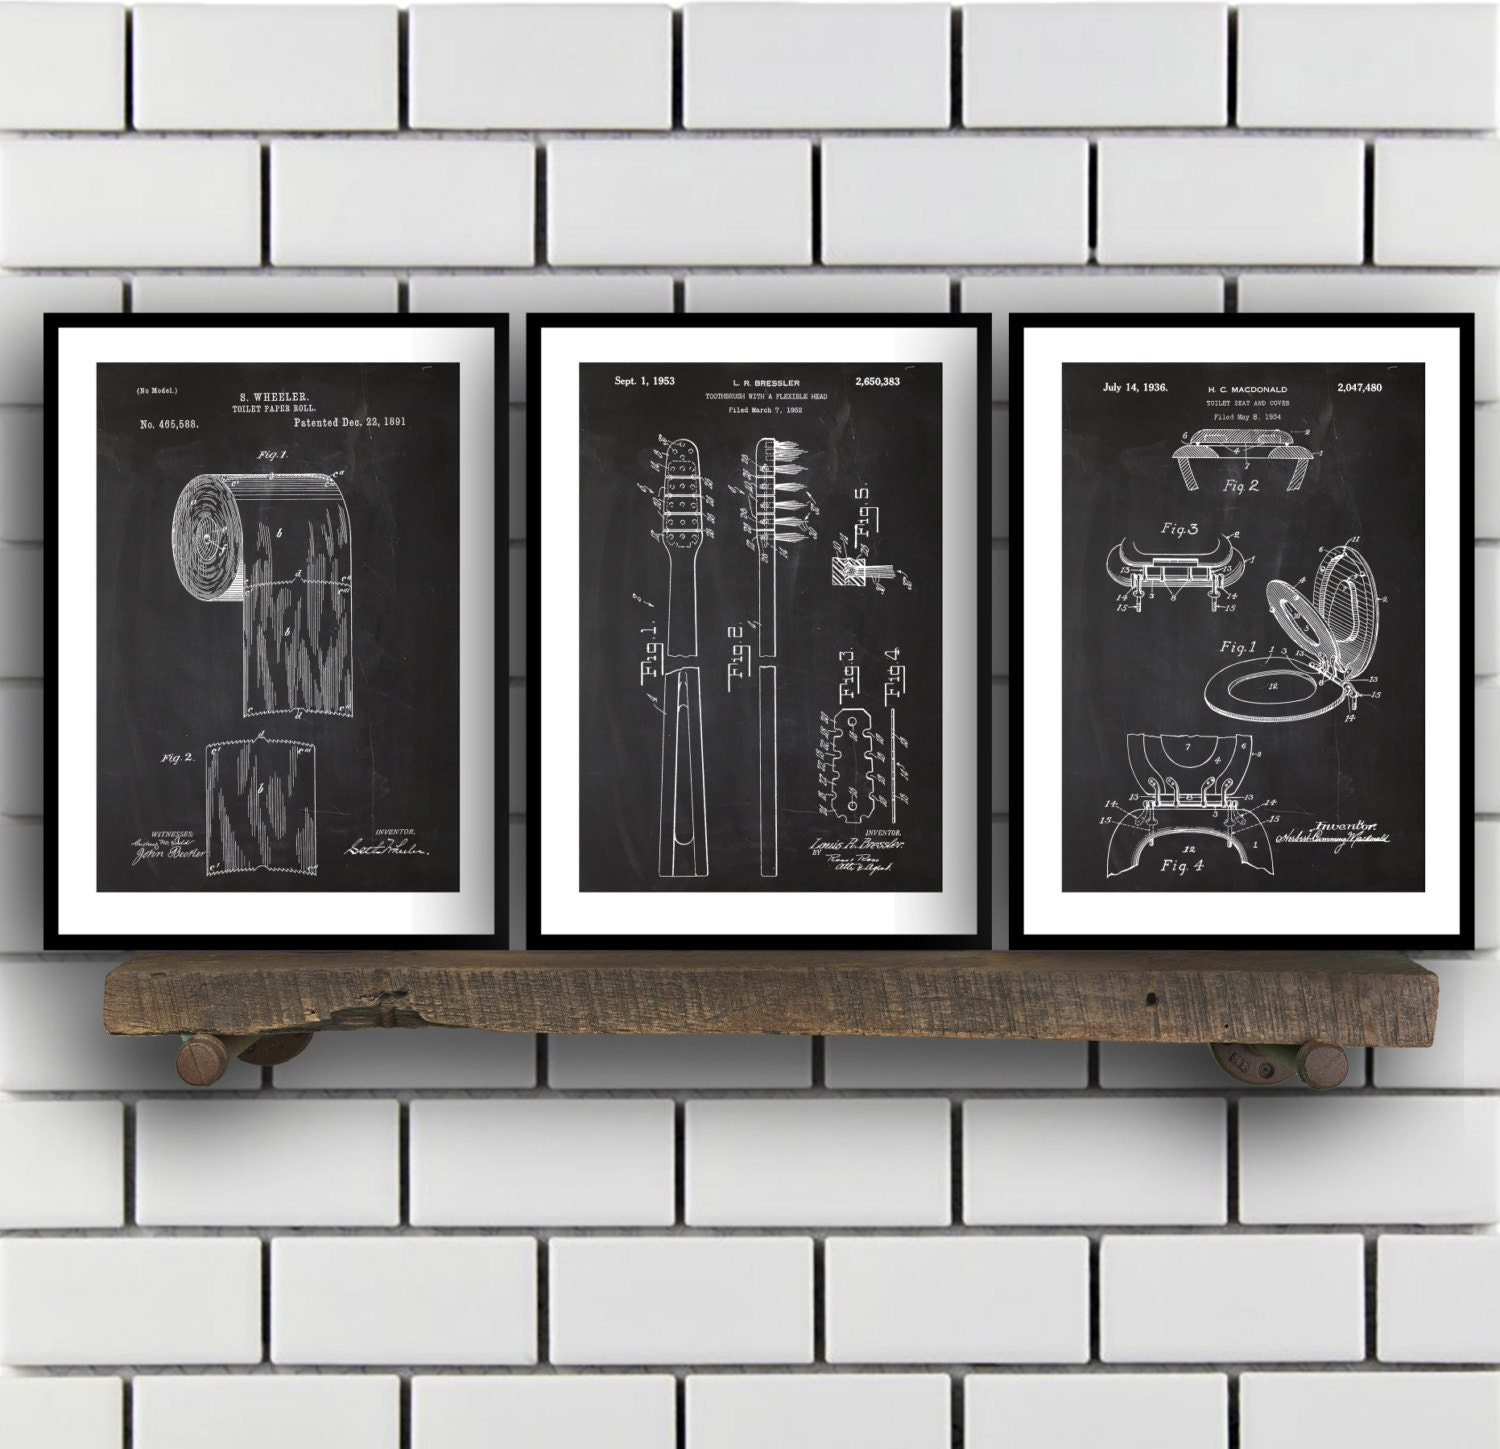 Wall art bathroom decor - Bathroom Poster Bathroom Art Bathroom Decor Bathroom Art Toilet Paper Toilet Seat Tooth Brush Bathroom Wall Art Bathroom 3 Set